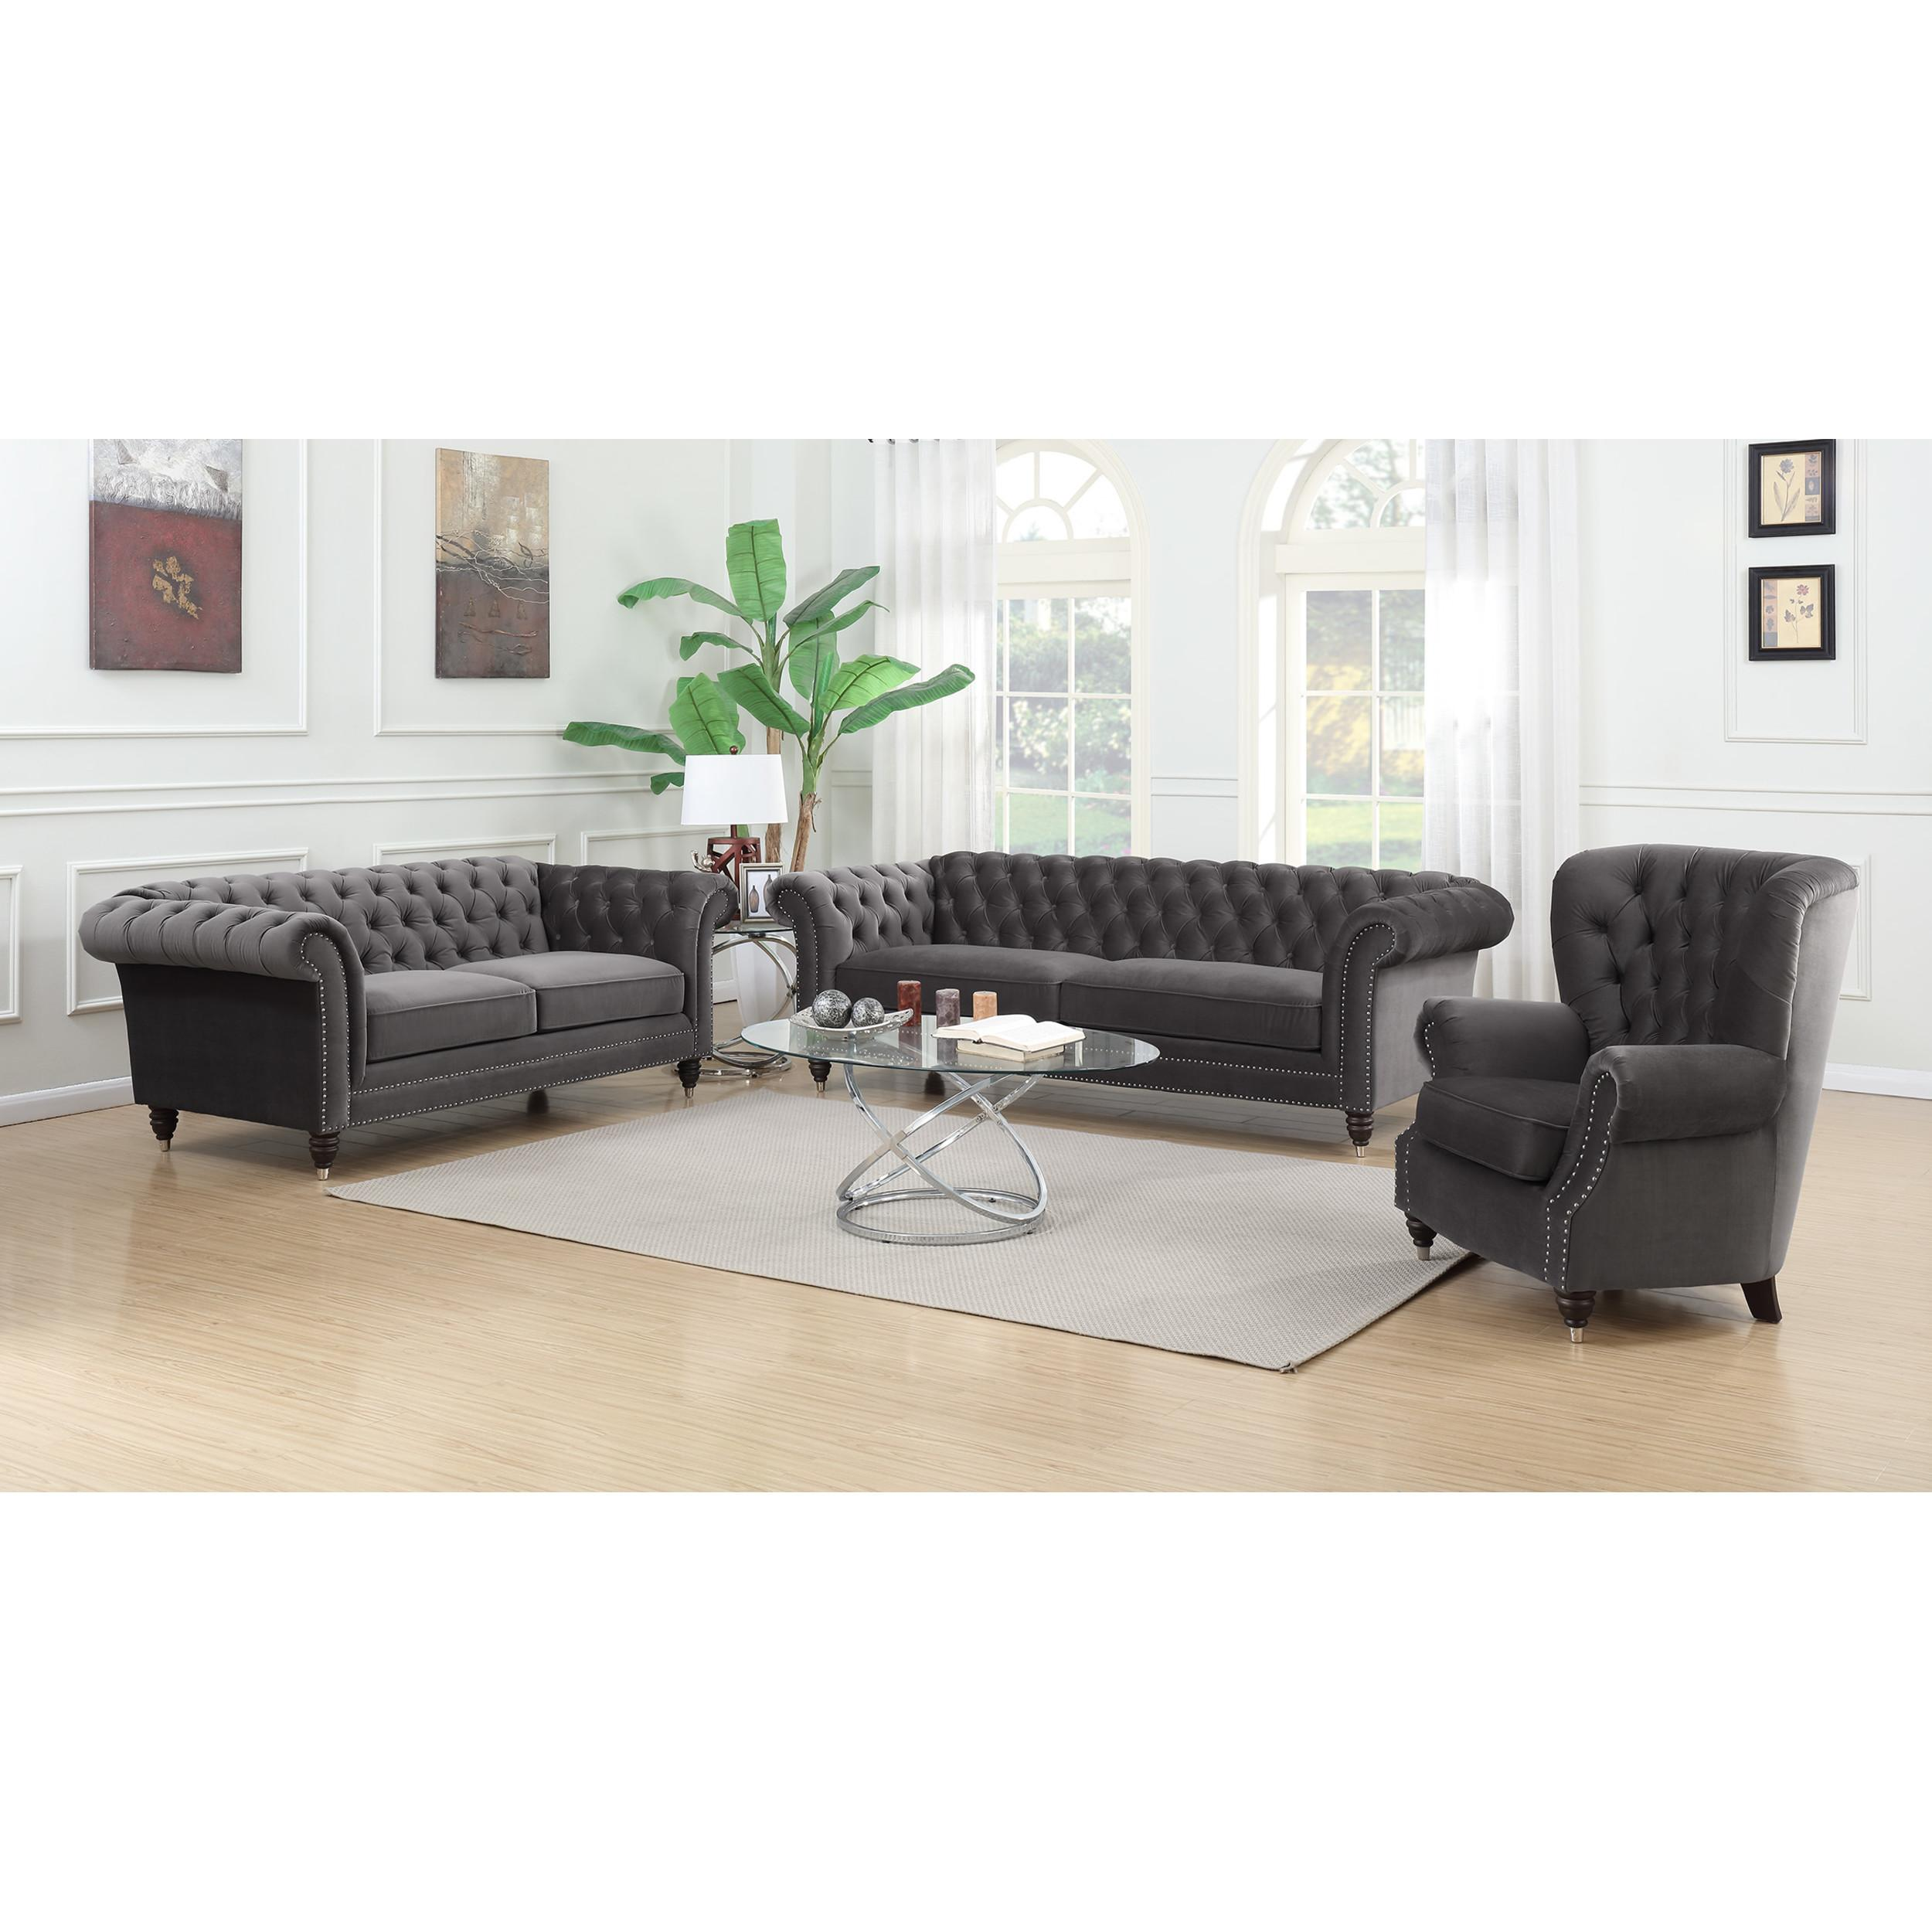 Tremendous Emerald Home Capone Platinum Nailhead 3Pc Living Room Set Home Interior And Landscaping Ponolsignezvosmurscom